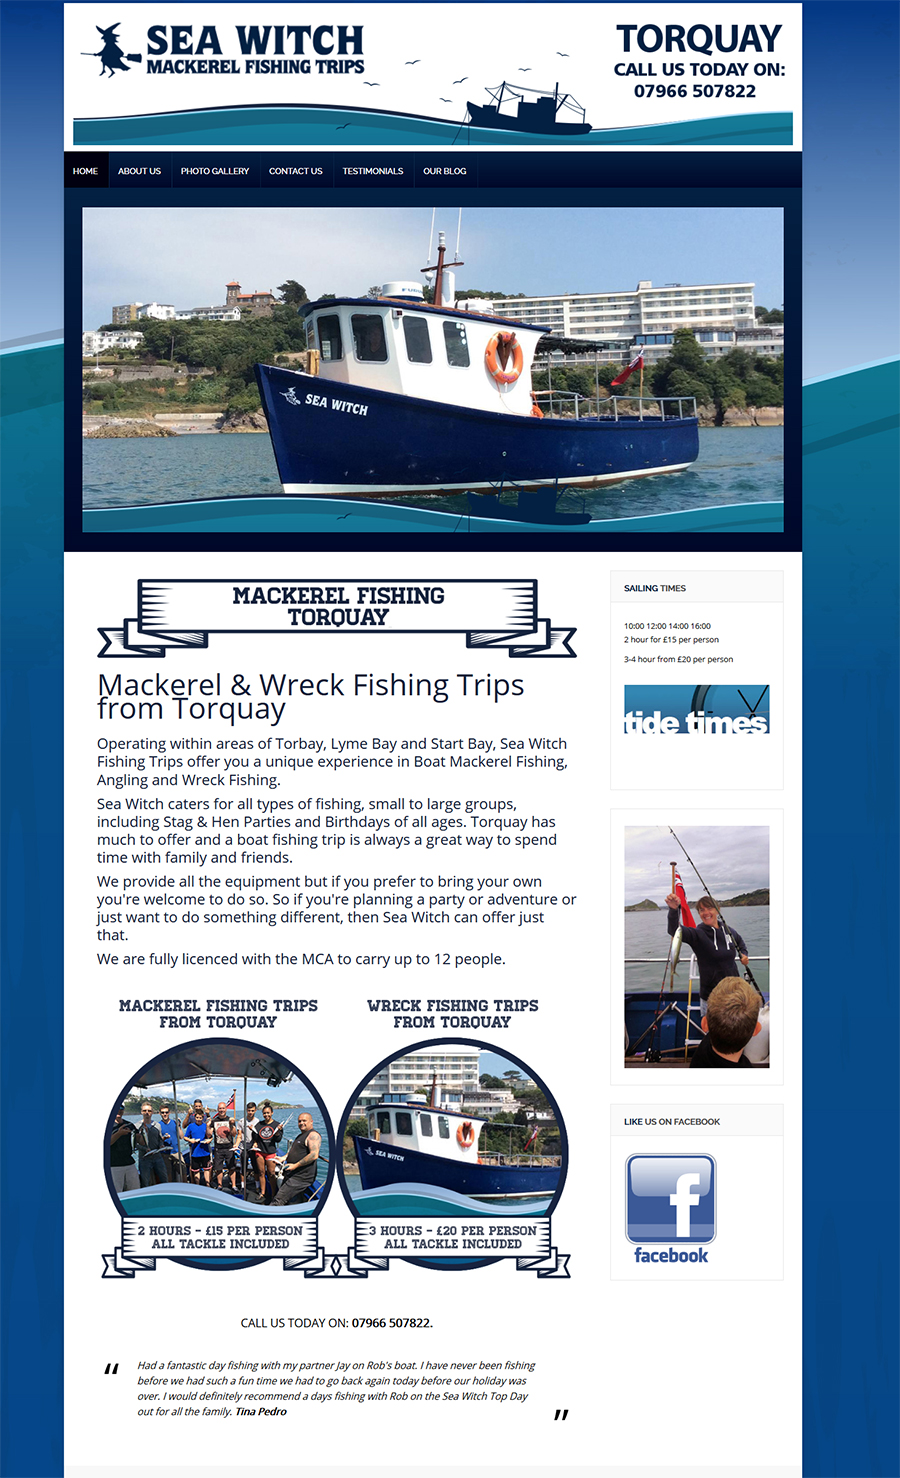 Mackerel fishing Torquay